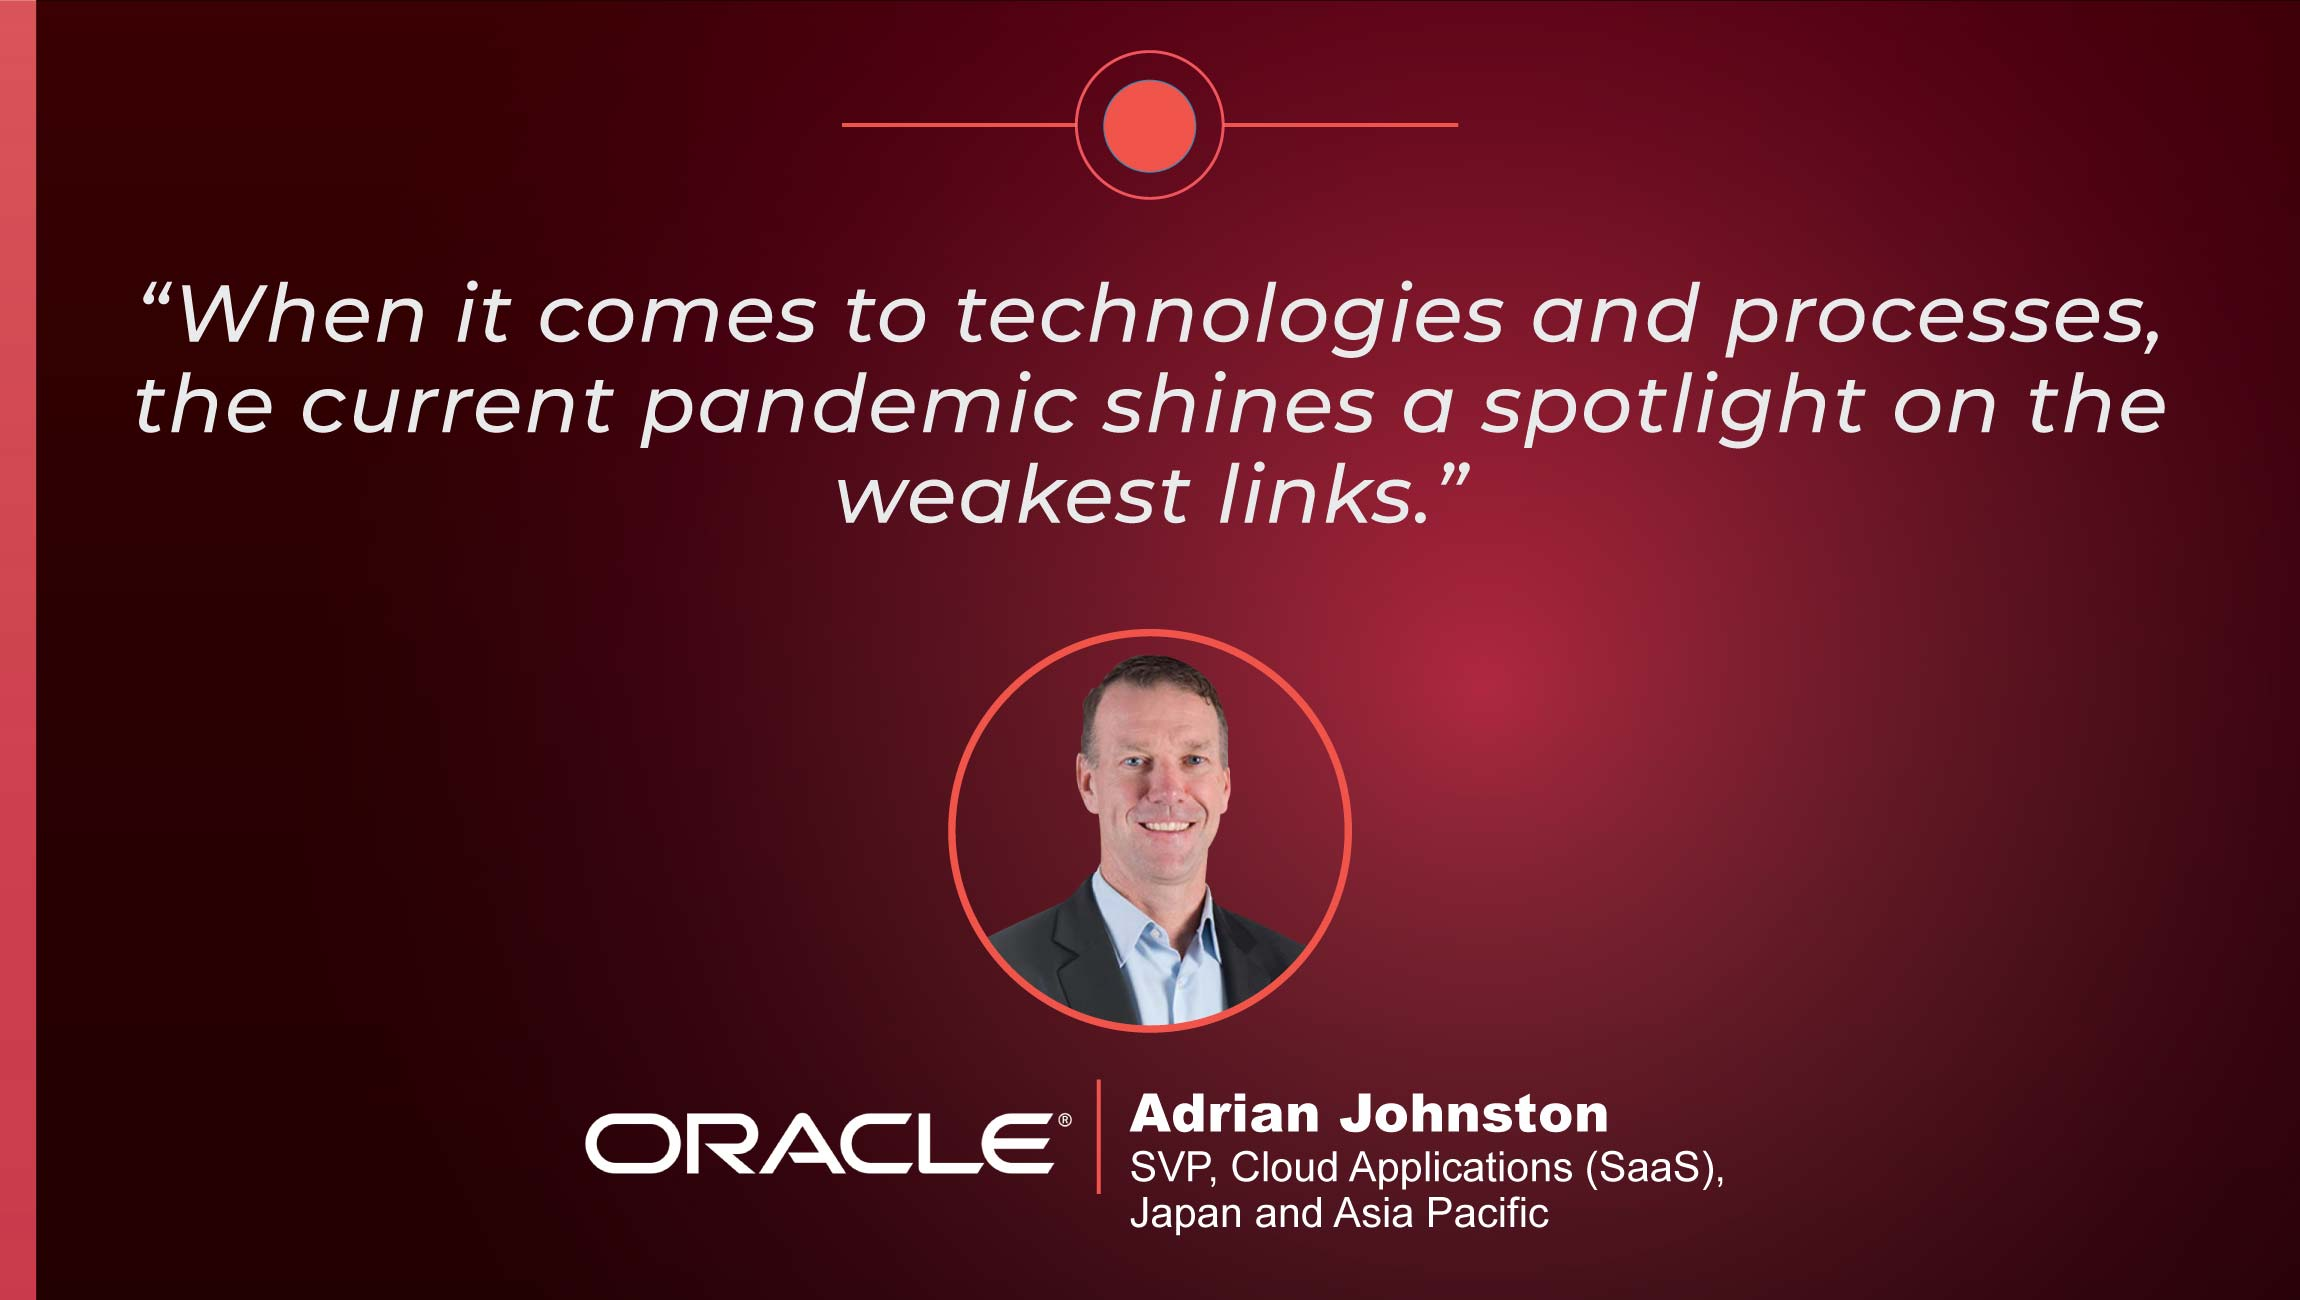 TechBytes with Adrian Johnston, SVP of Cloud Applications, Japan and Asia at Oracle